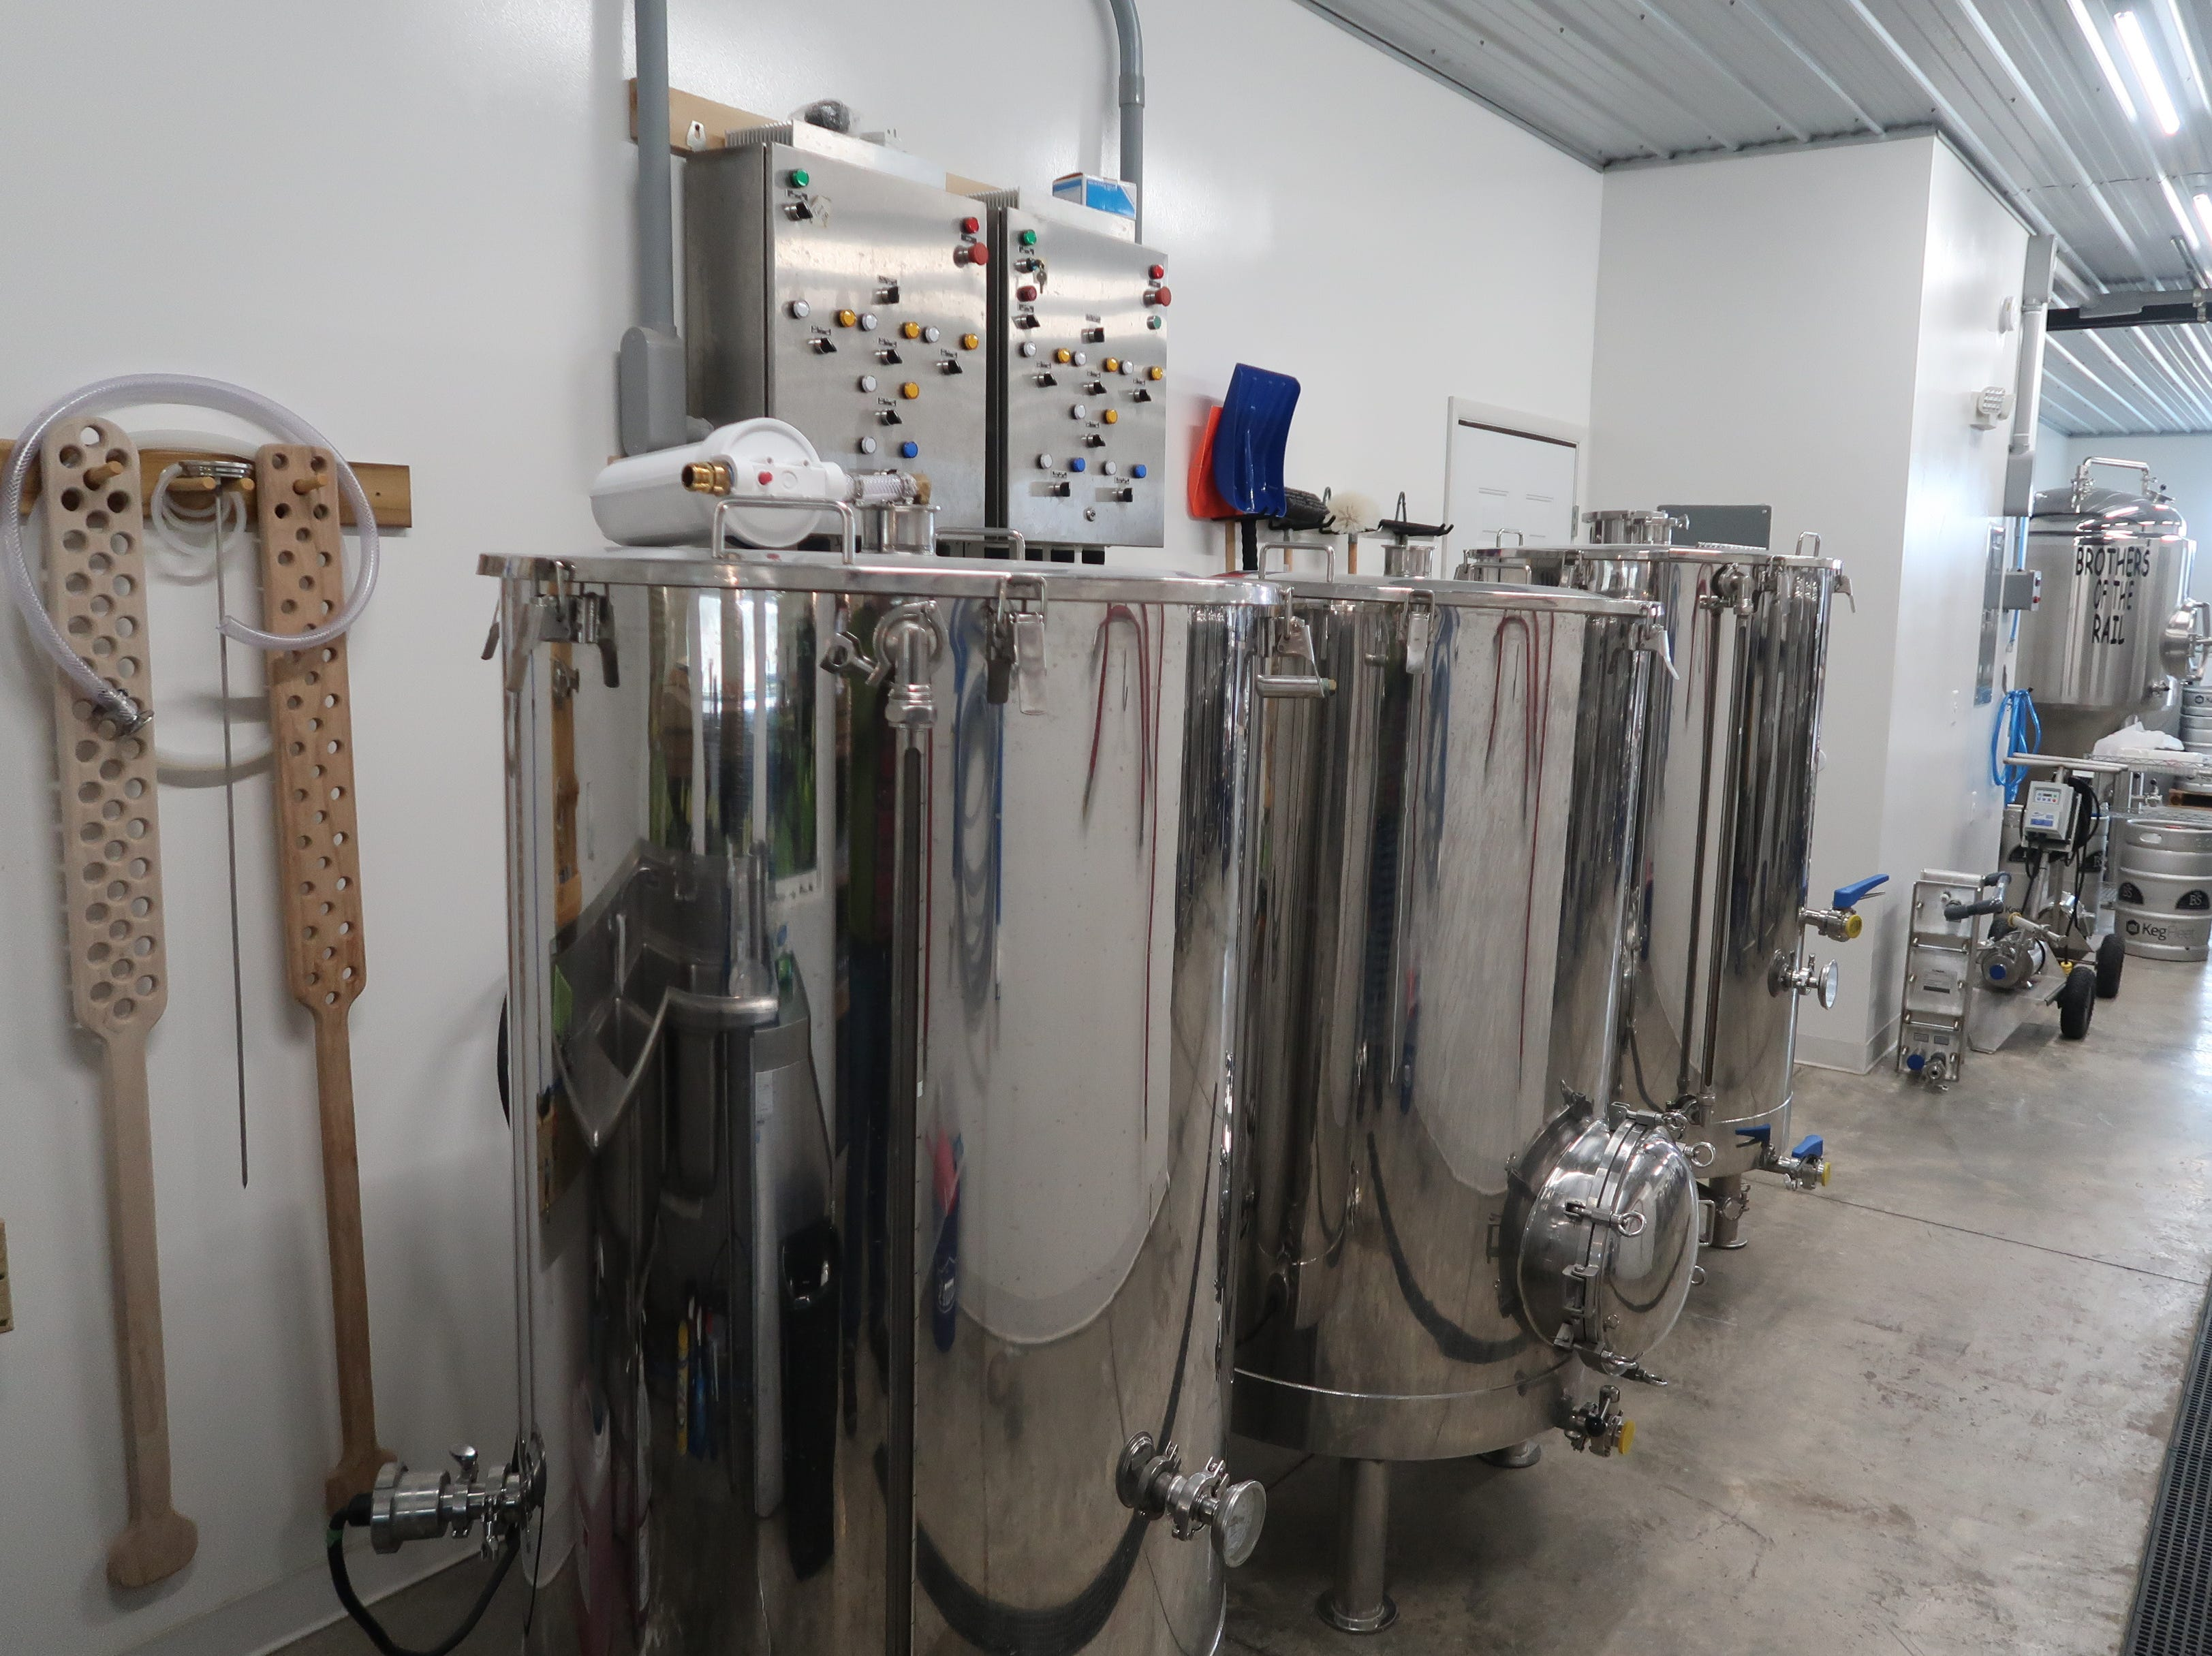 The 3-barrel brewhouse at No BS Brewing in Livonia.